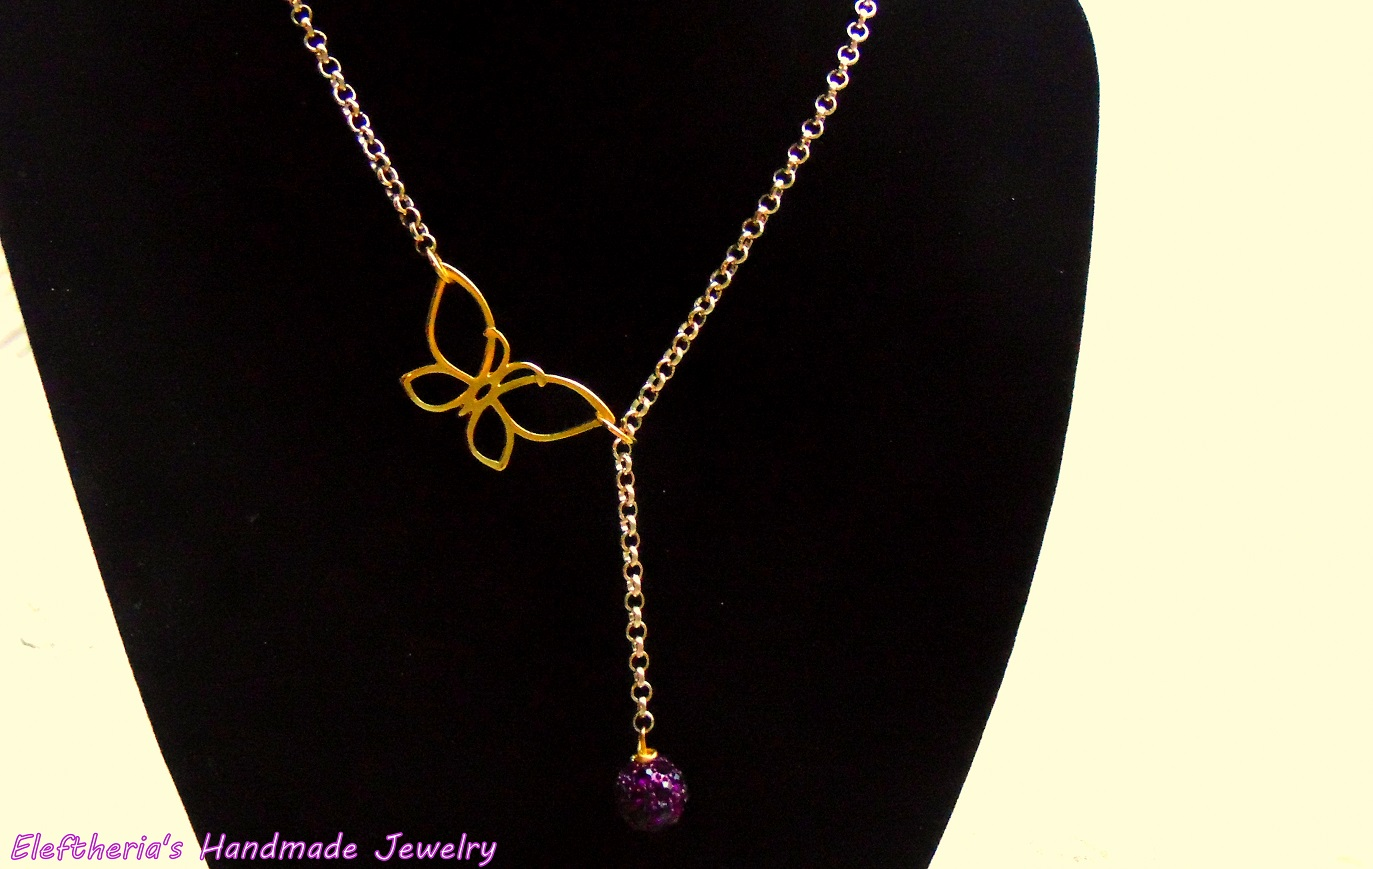 Elegant Butterfly Drop Necklace